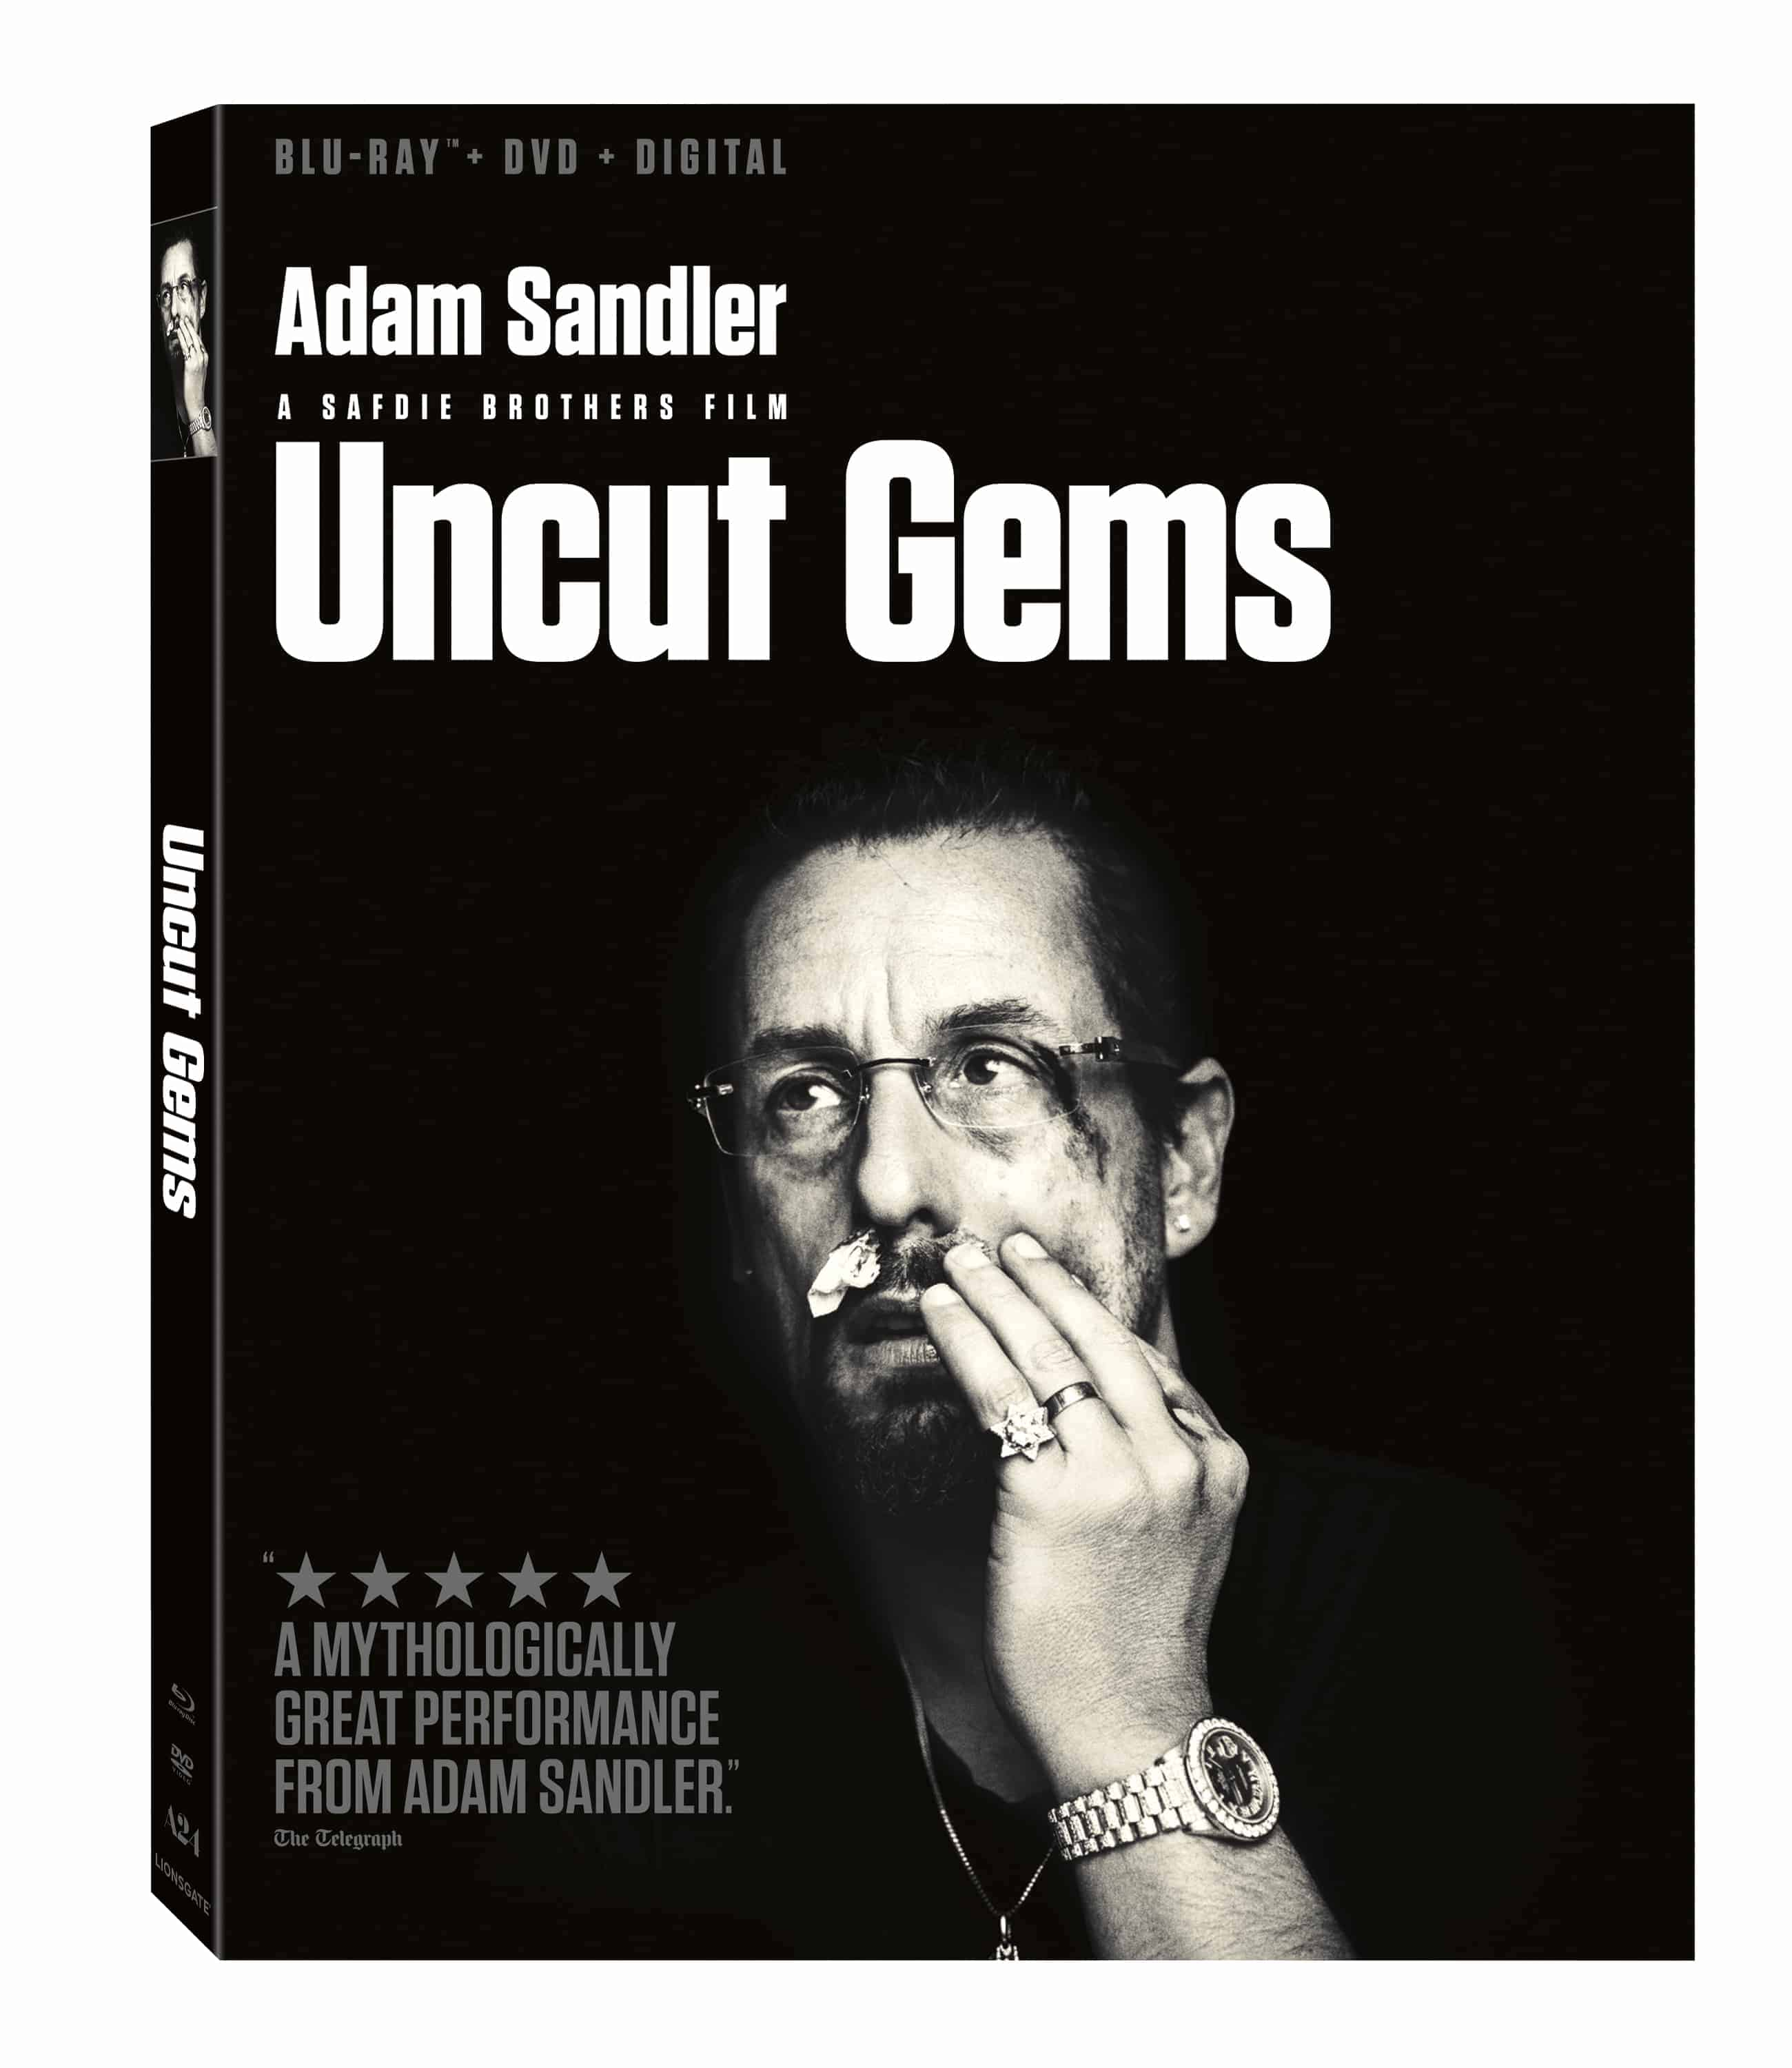 Uncut Gems Blu-ray box art